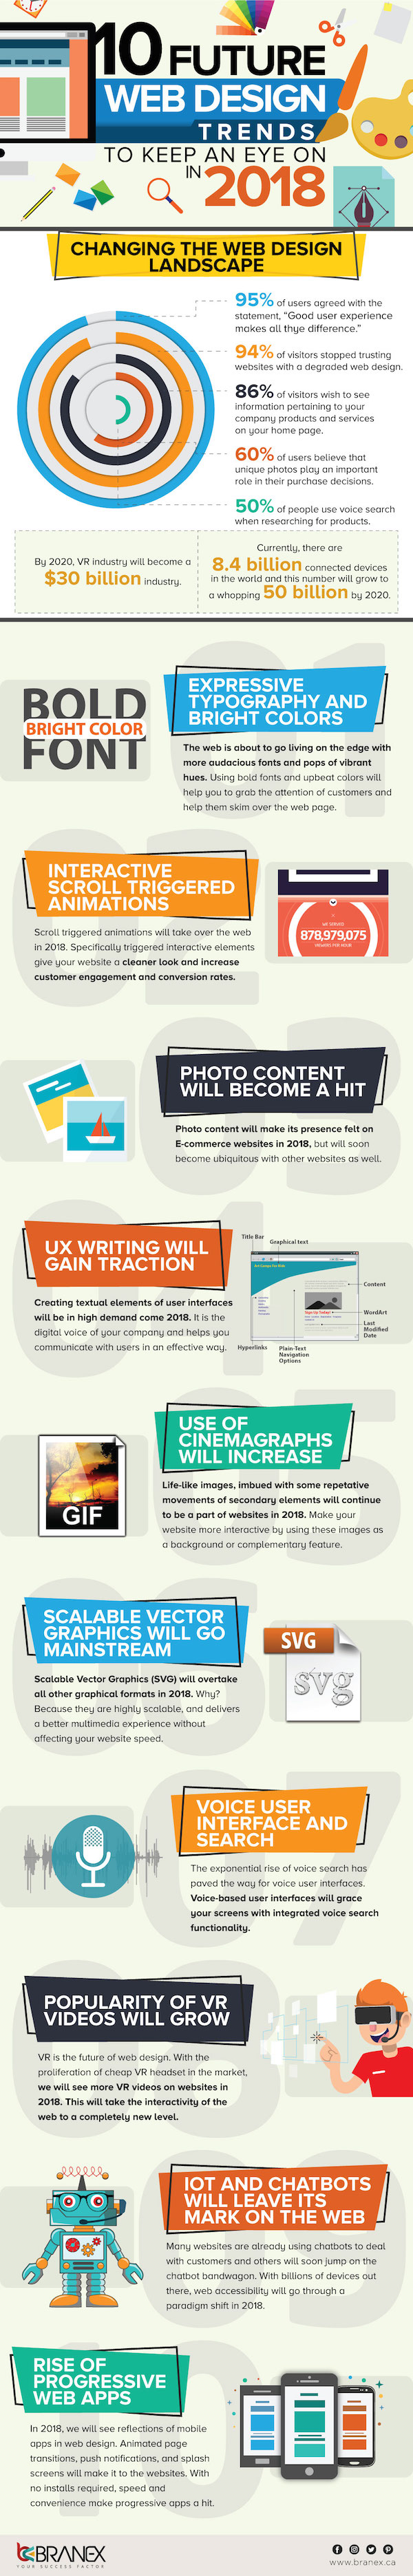 Infographic: 10 Web Design Trends To Keep An Eye Out For In 2018